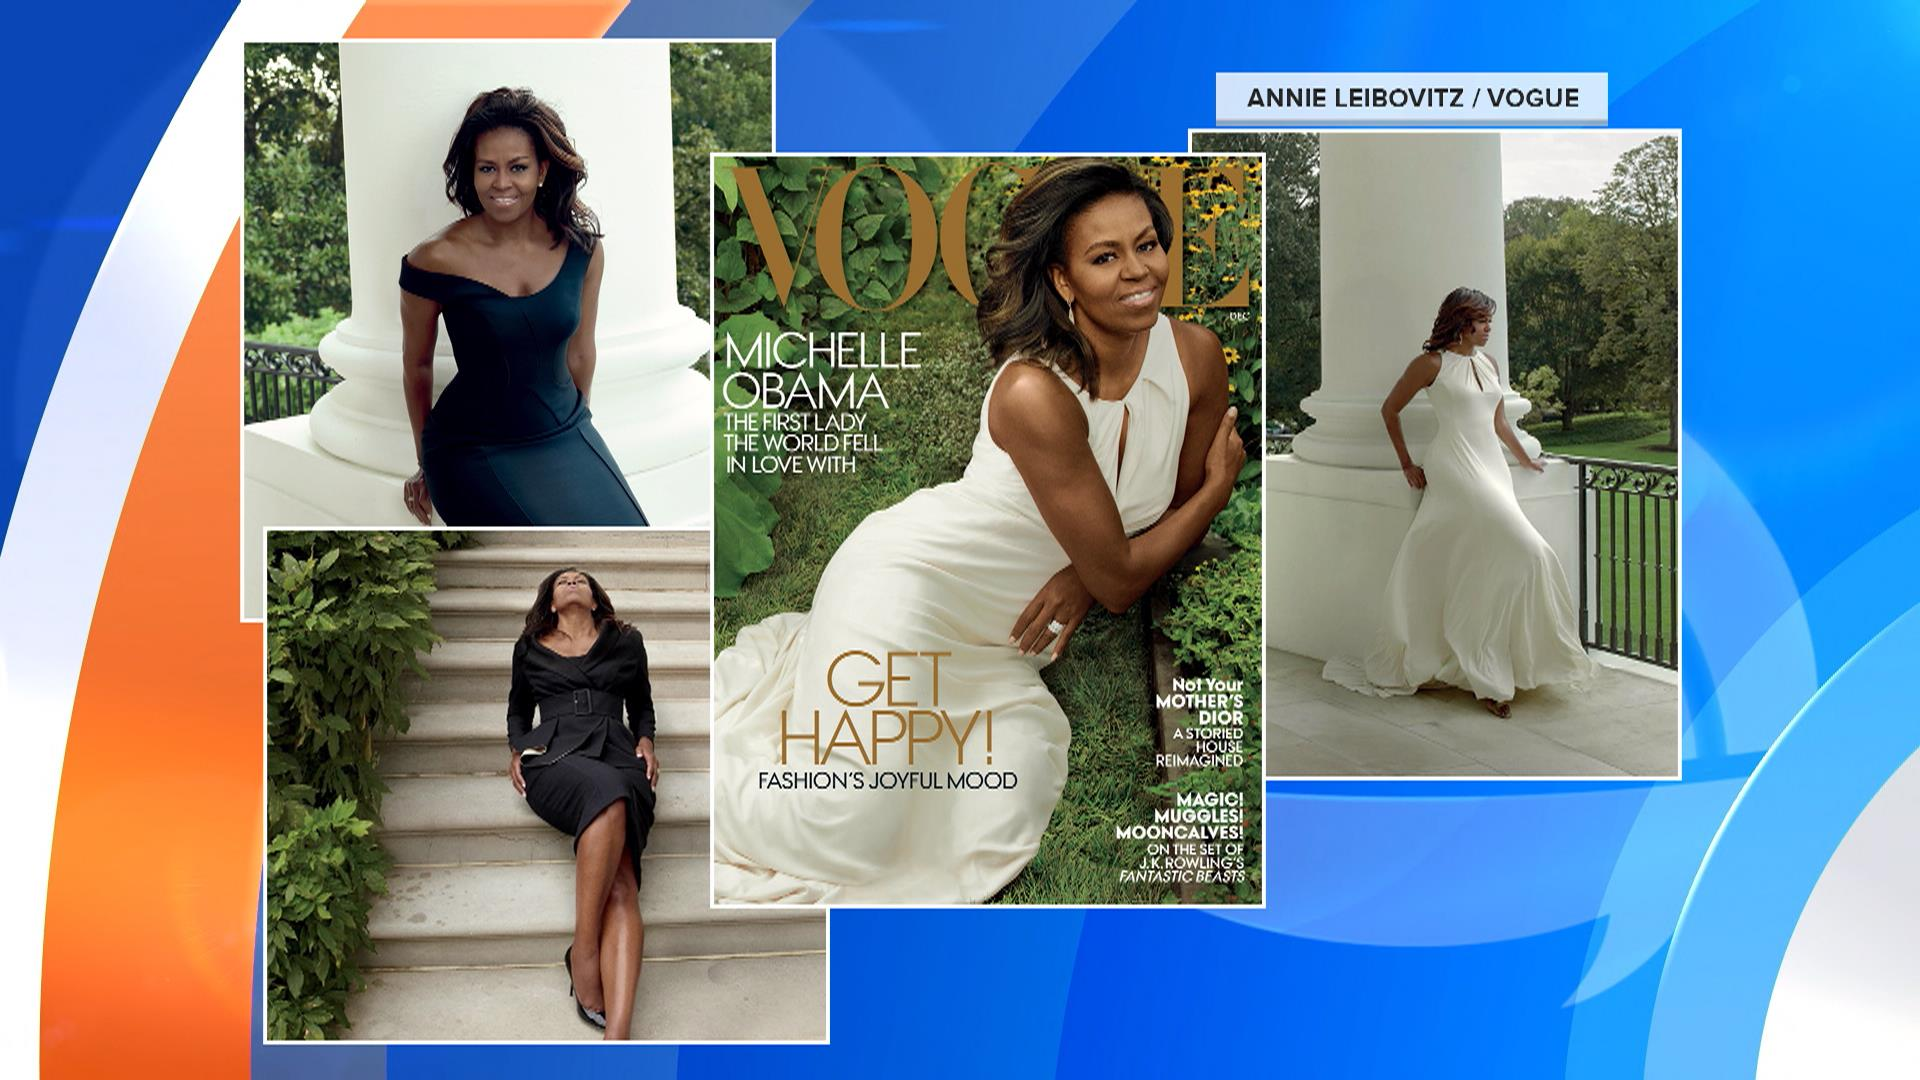 Buy Look come at michelle obamas vogue cover picture trends